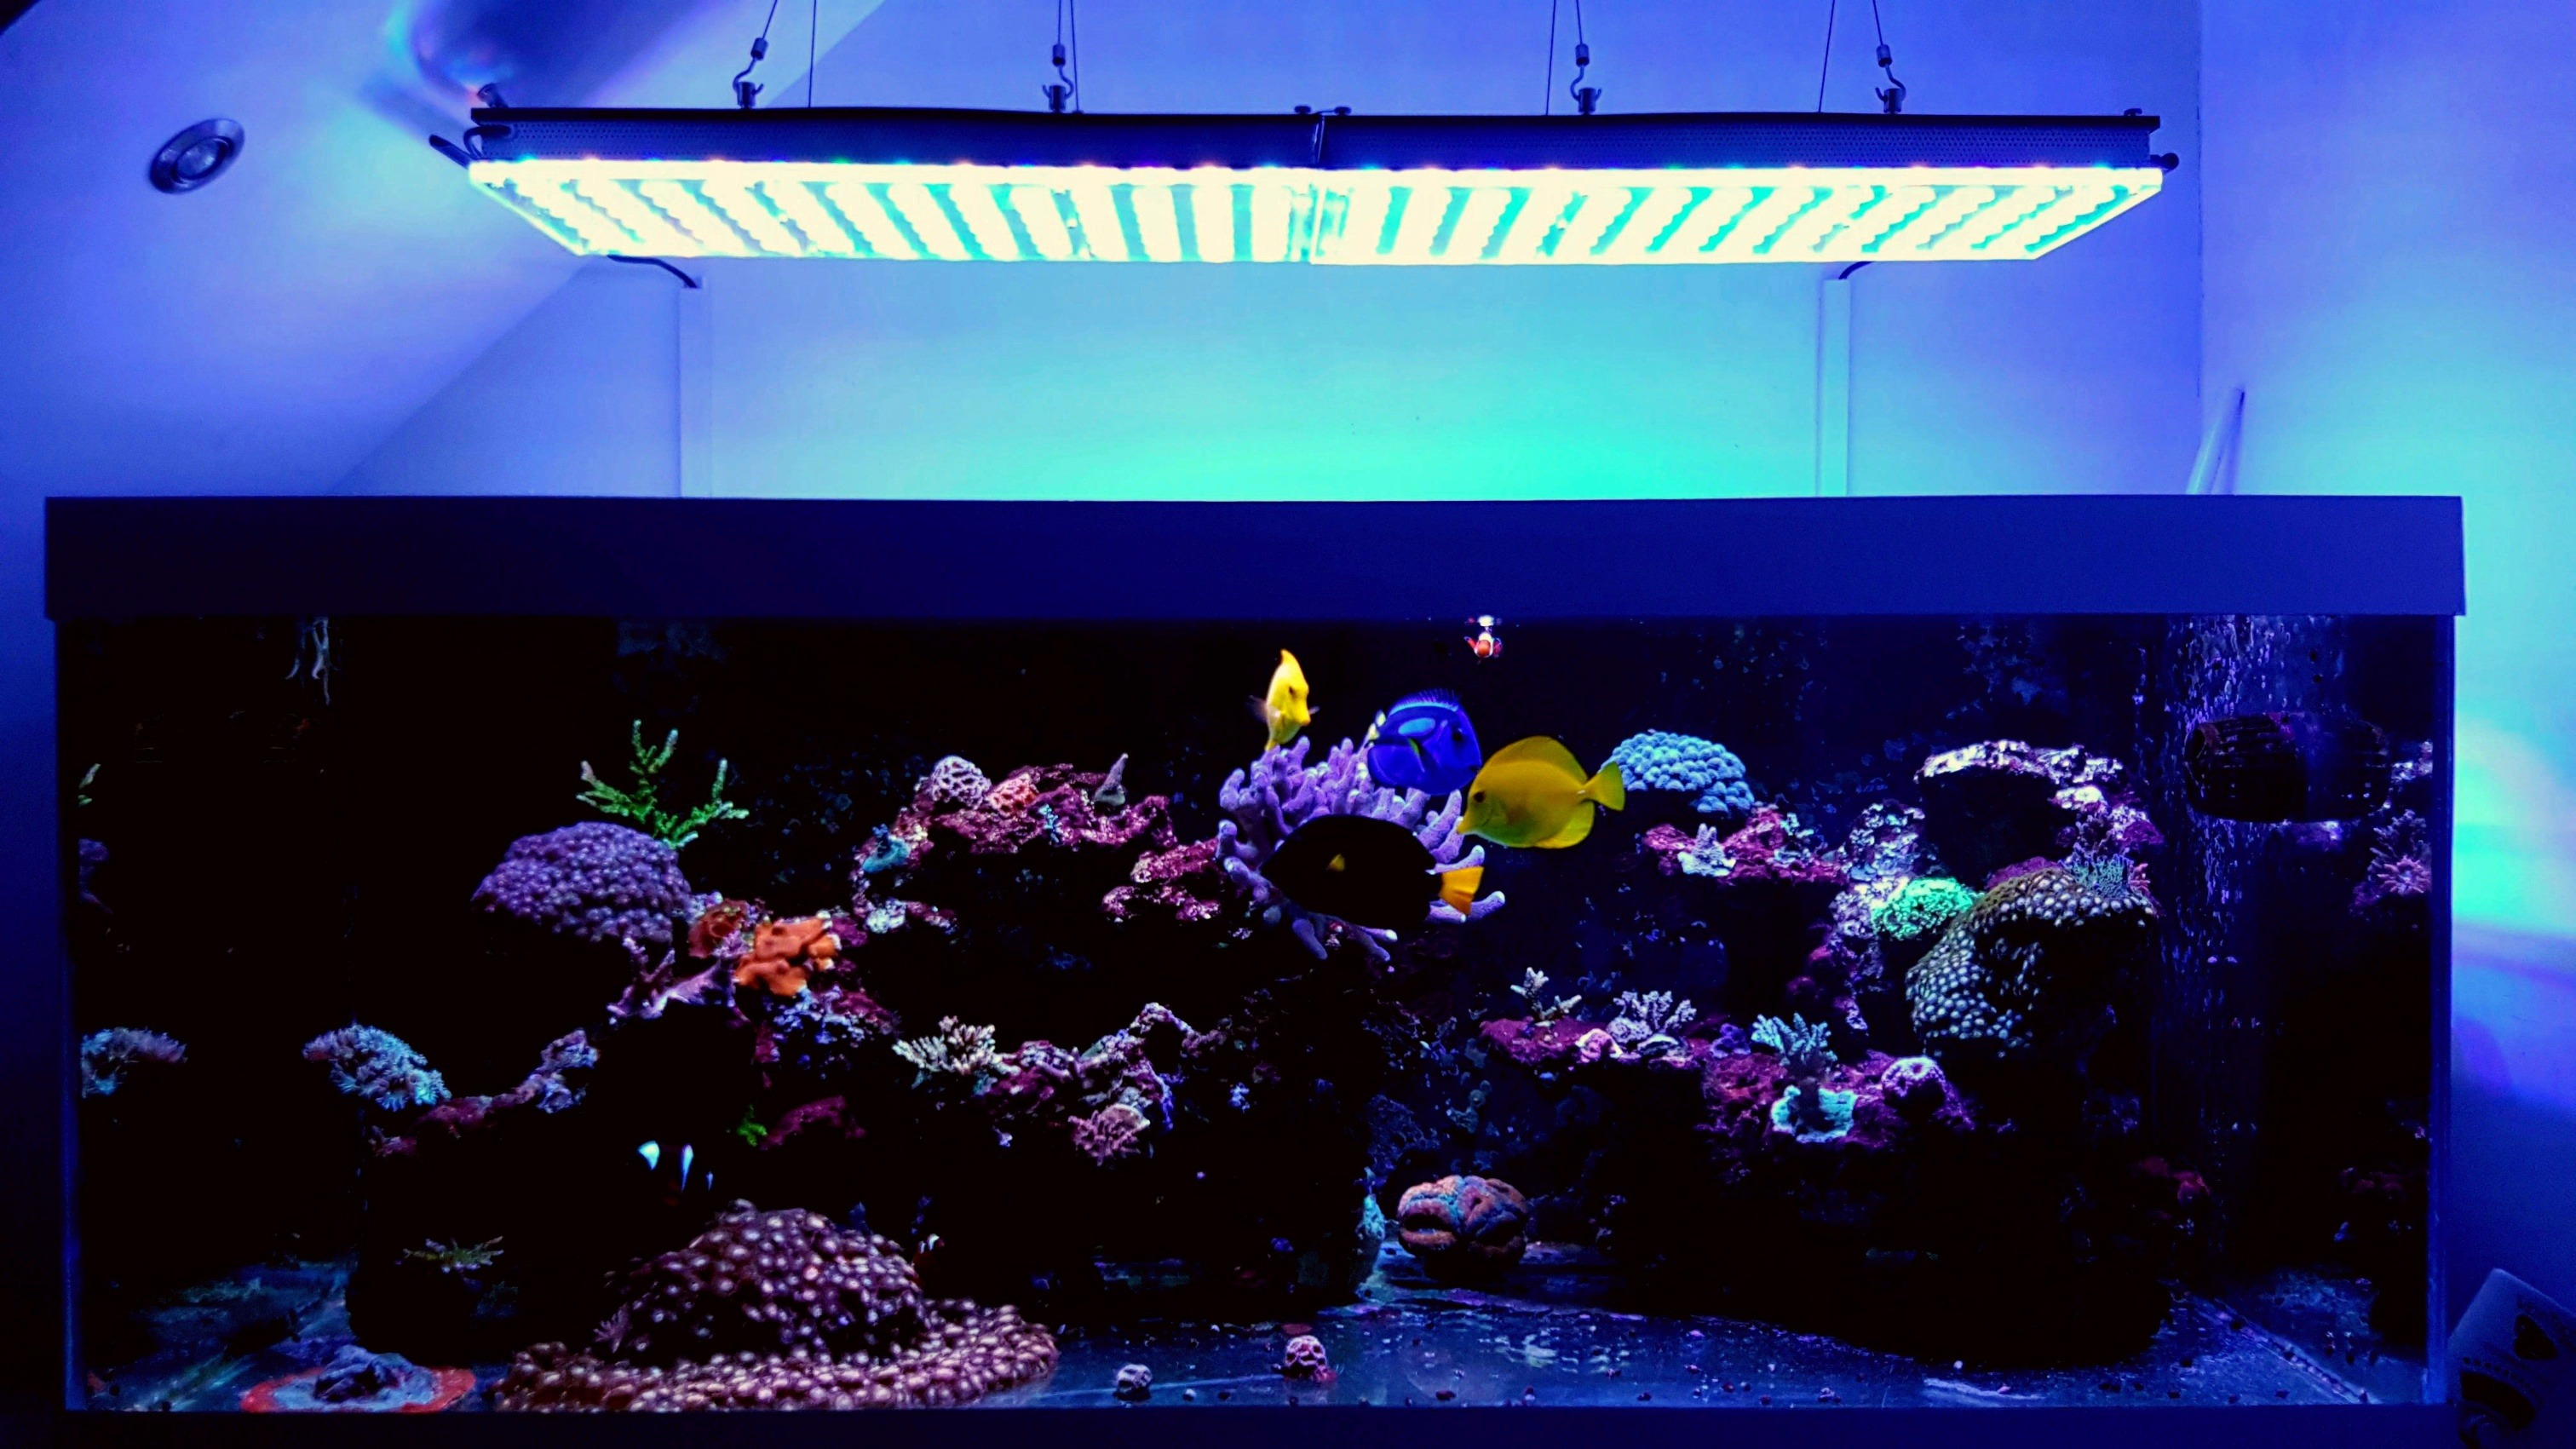 cheap full plant spectrum how from on cannabis aquarium led lights with light lighting vegging weed amazon to lighttimetunnel grow